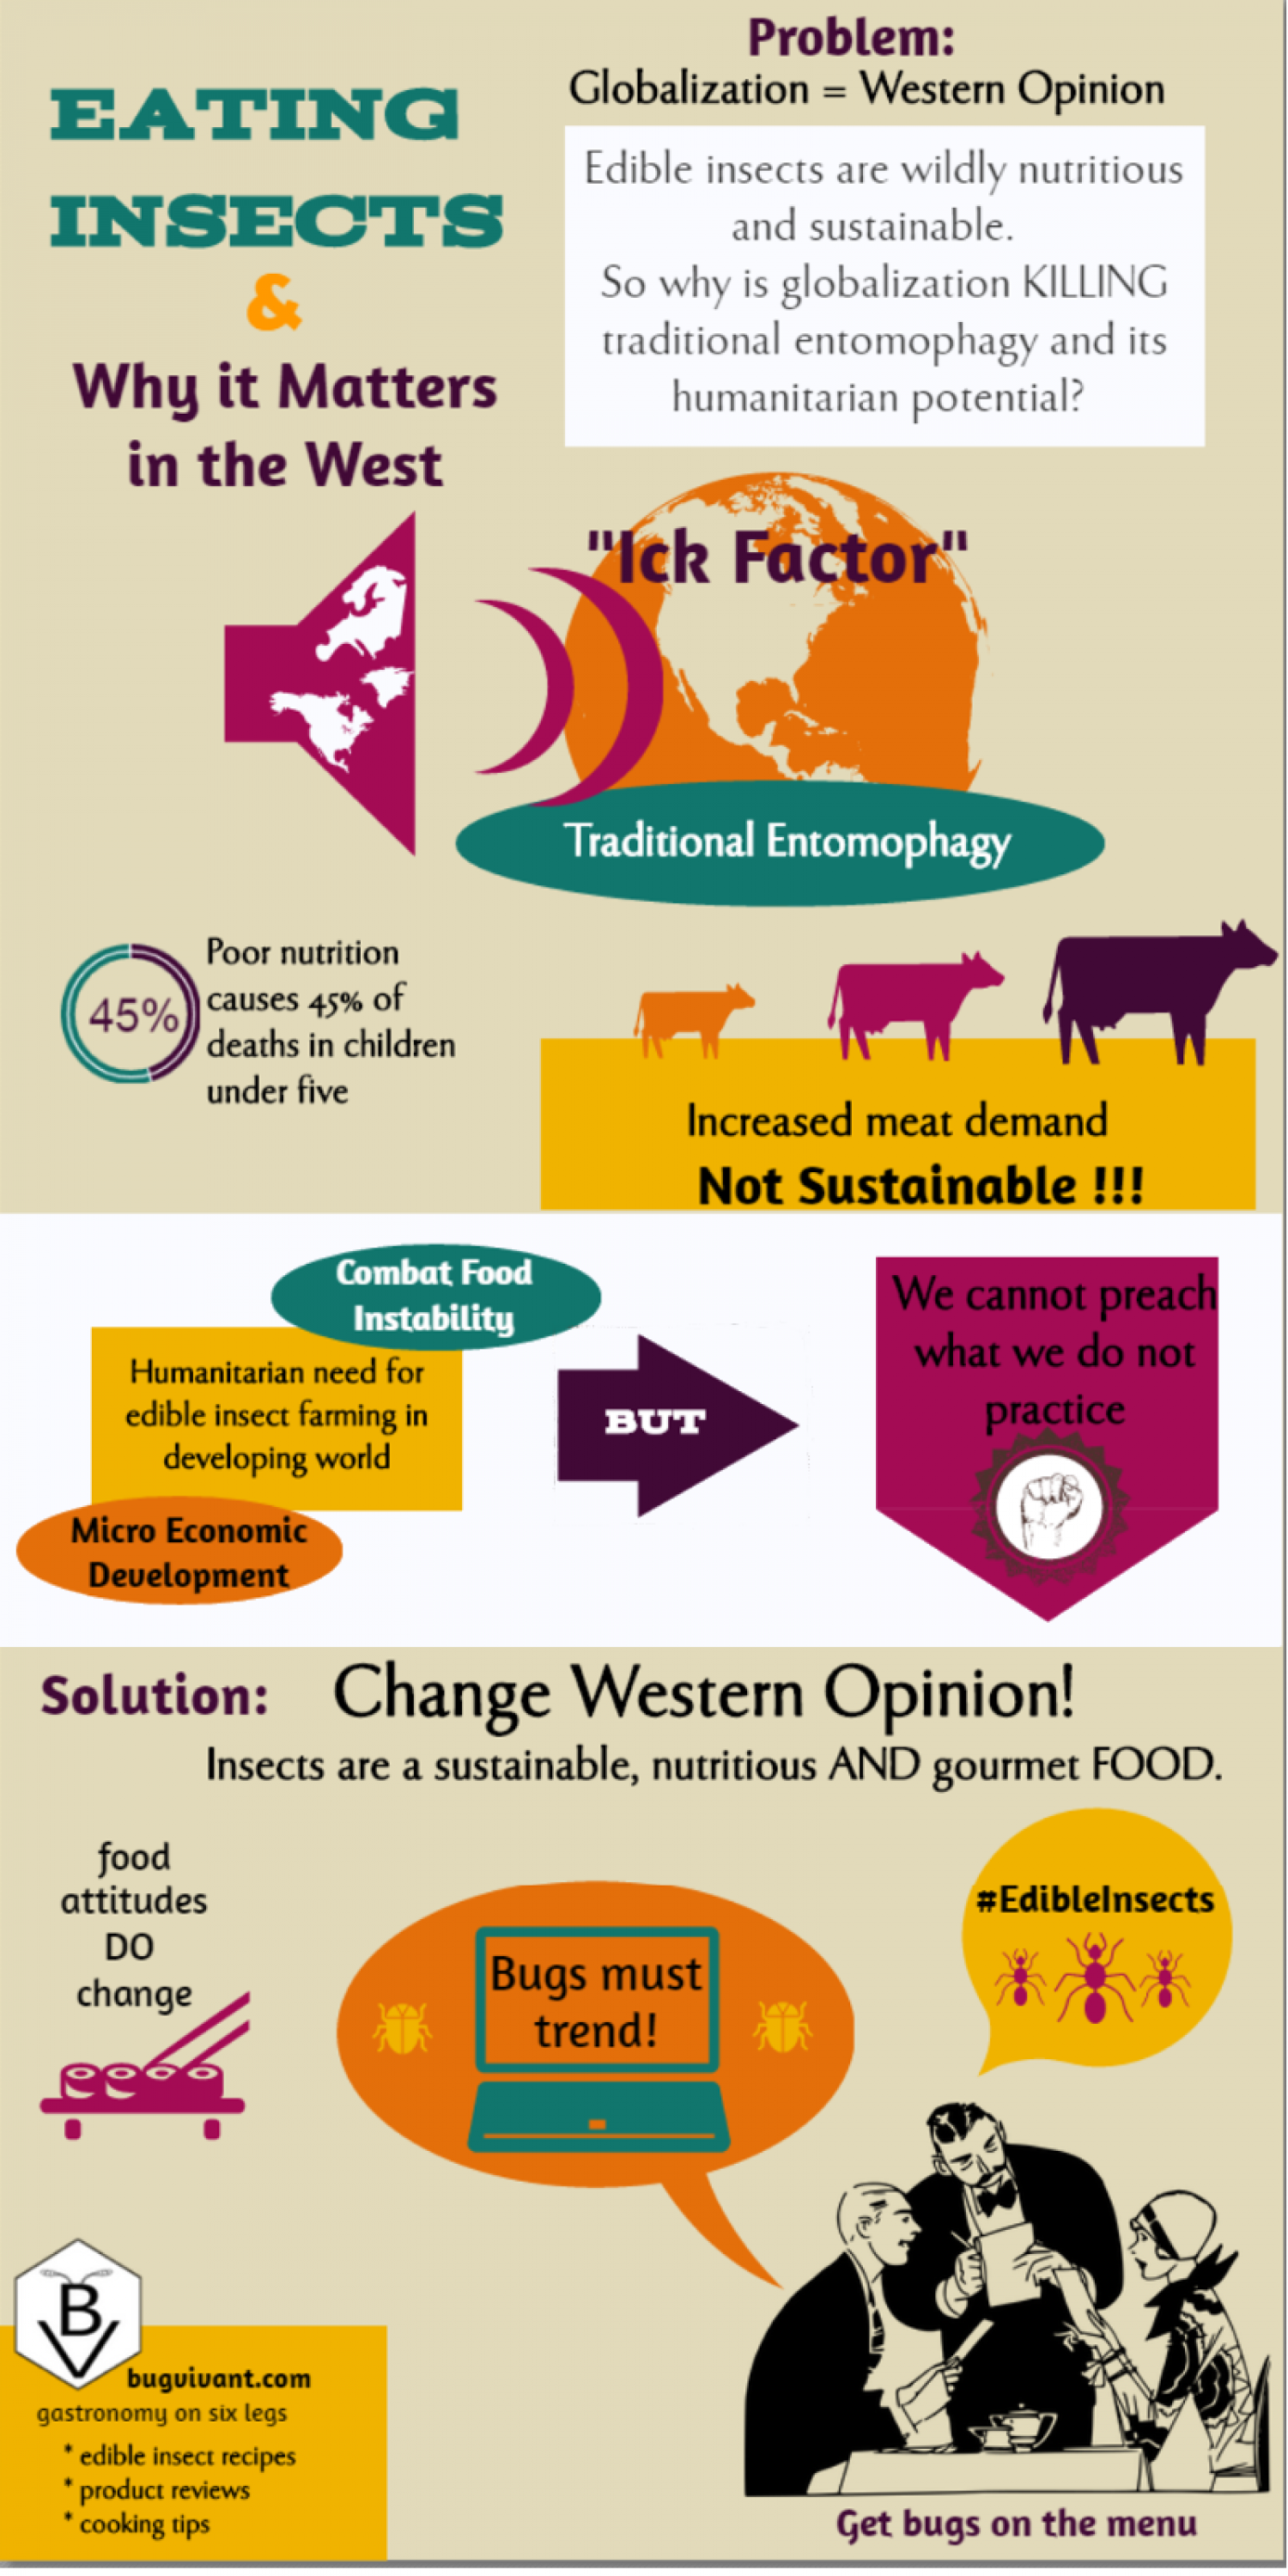 Why Eat Insects & Why it Matters in the West Infographic